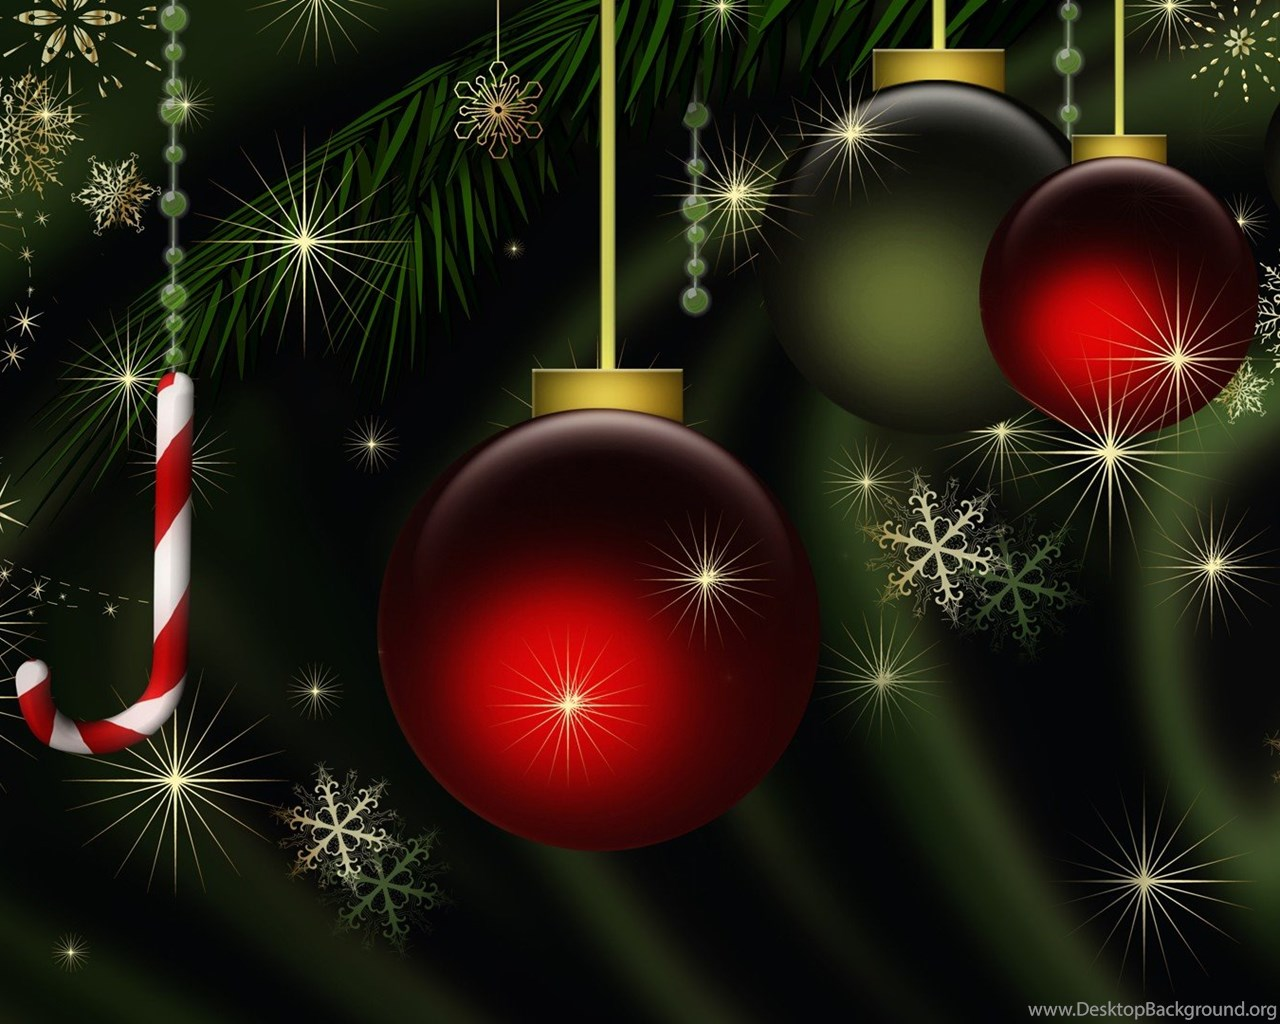 Dark Green Christmas, 1920x1080 HD Wallpapers And FREE